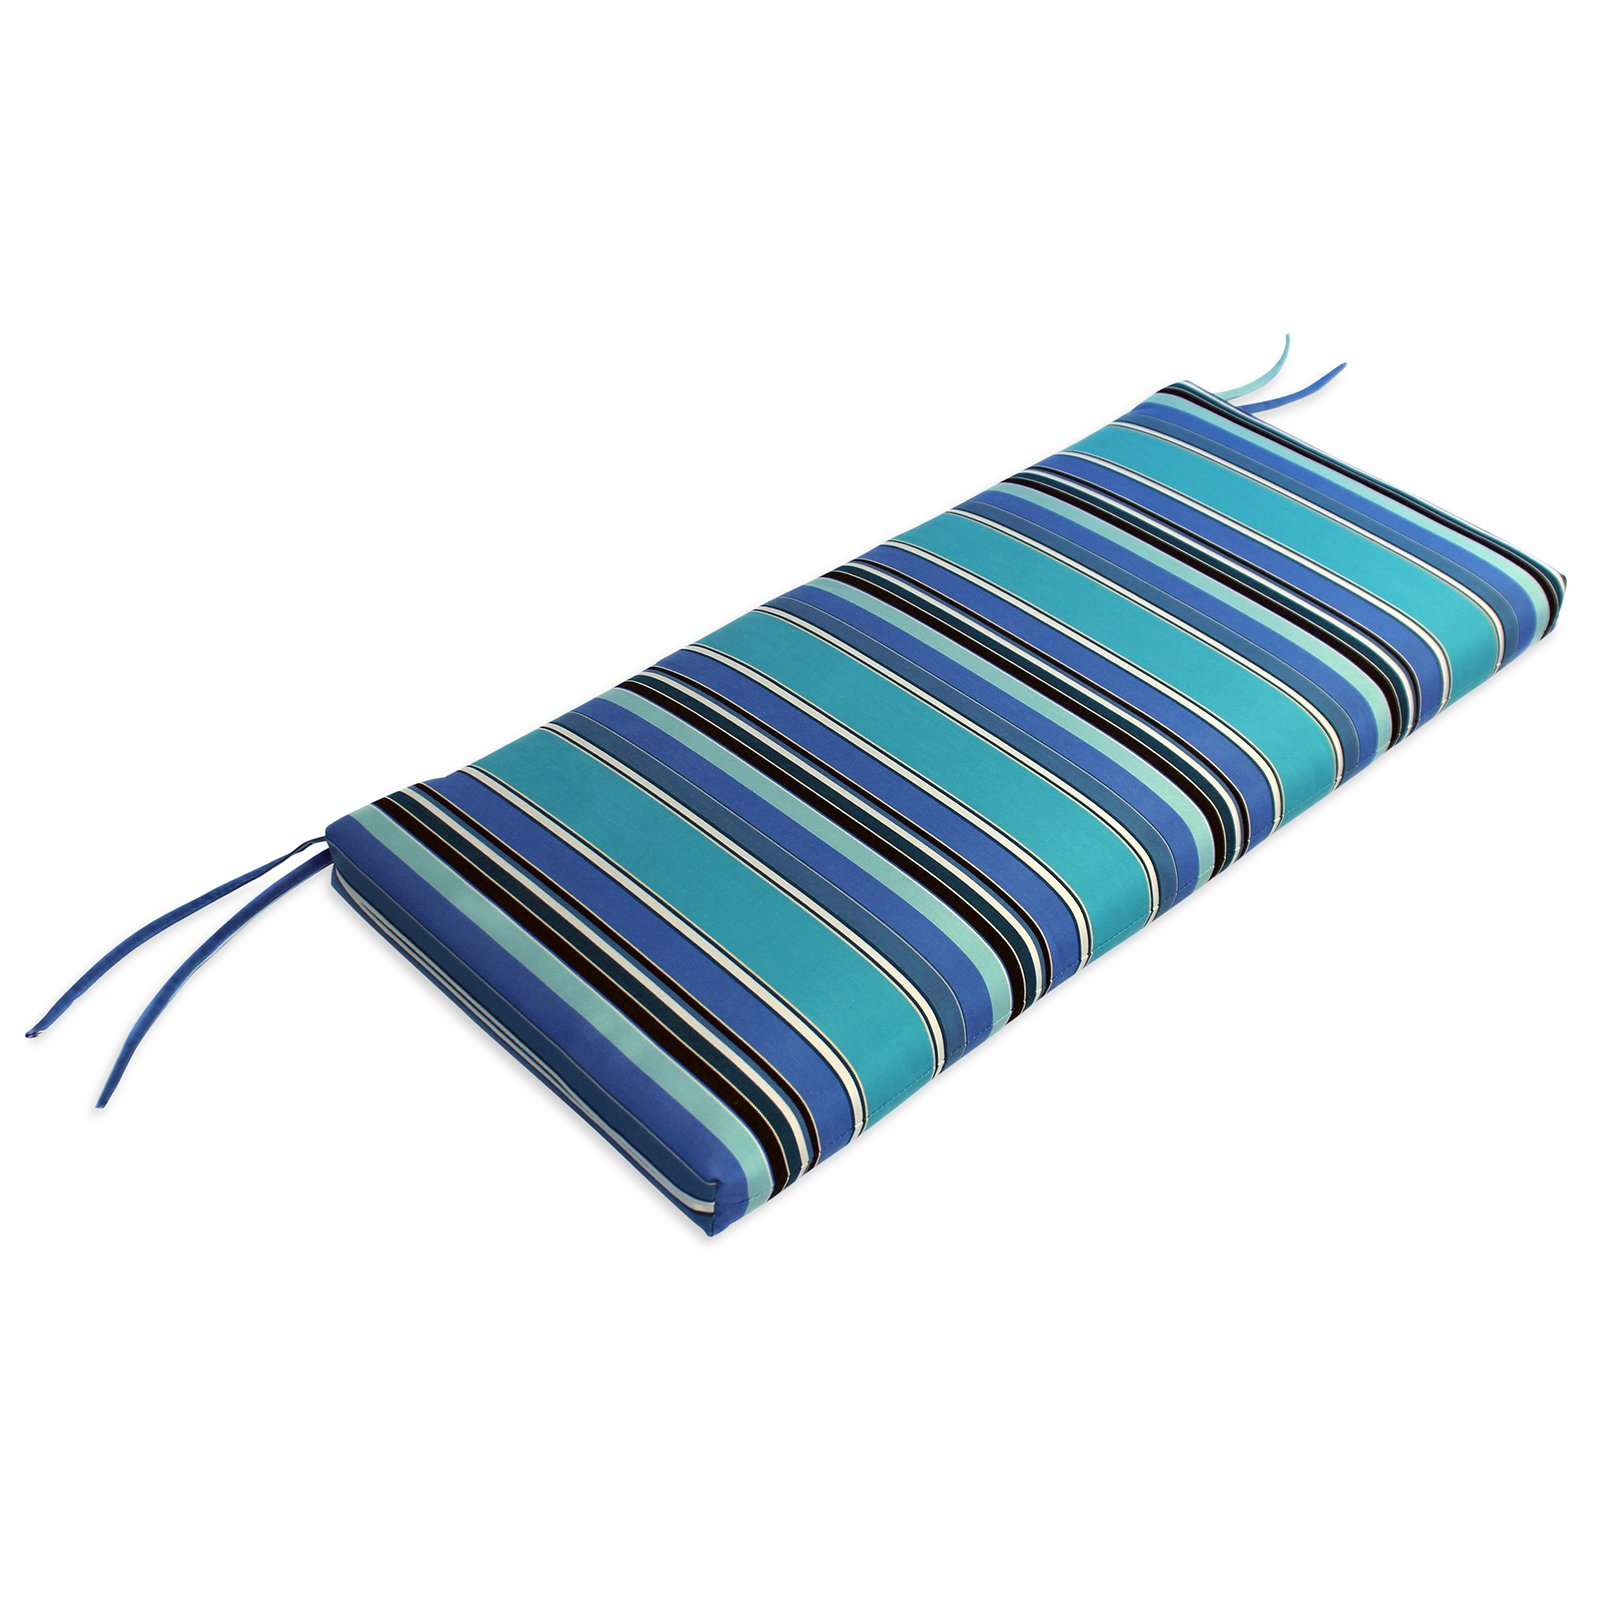 Comfort Classics 40 x 18 in. Sunbrella Waterfall Style Bench Cushion